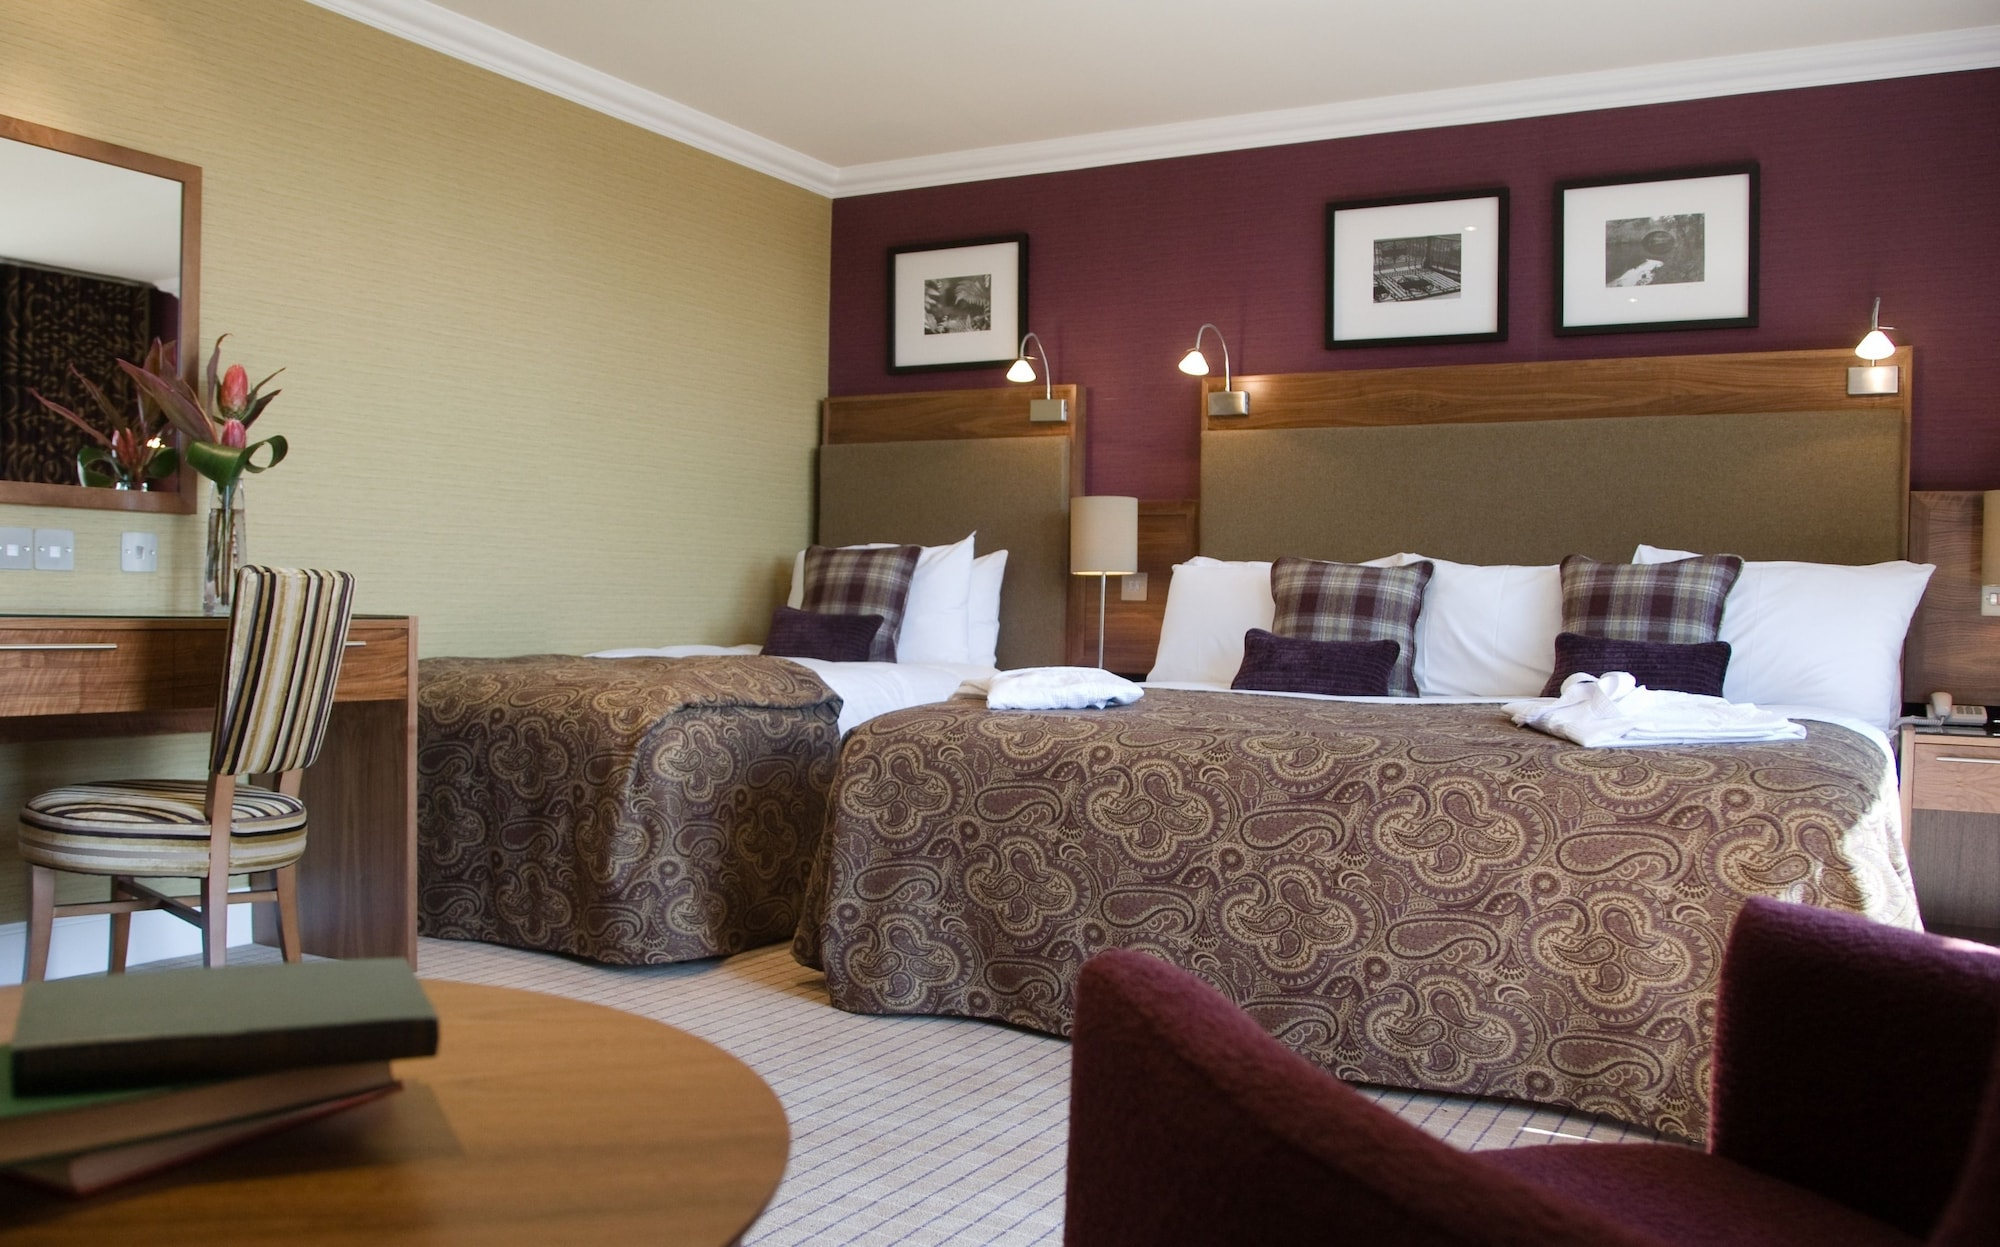 Crieff Hydro, Perthshire and Kinross